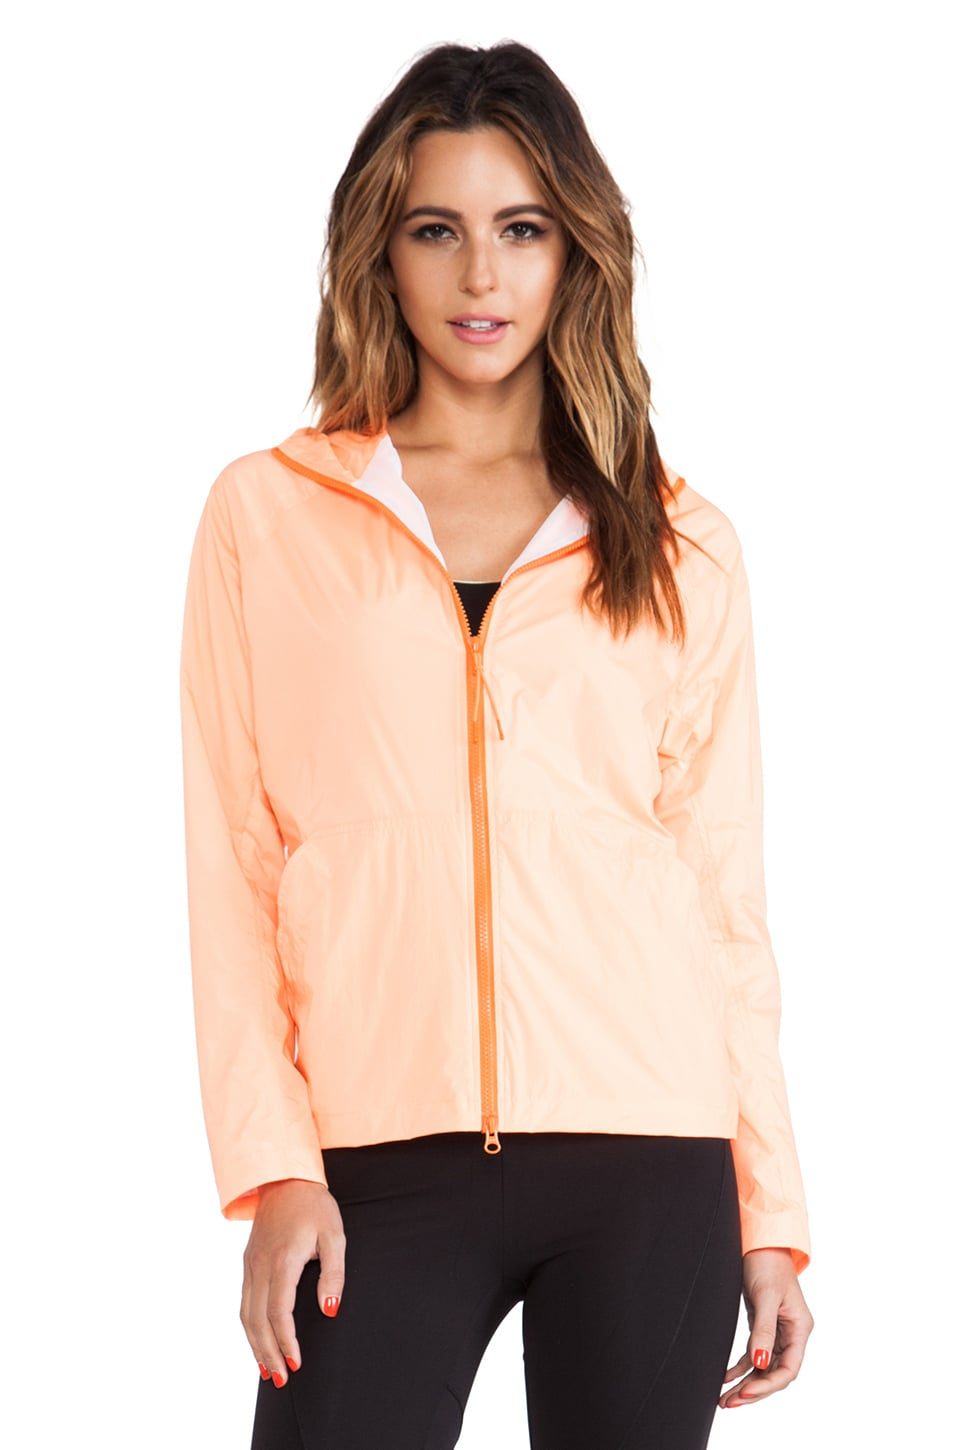 Theory 38 Layyerz Jacket in Neon